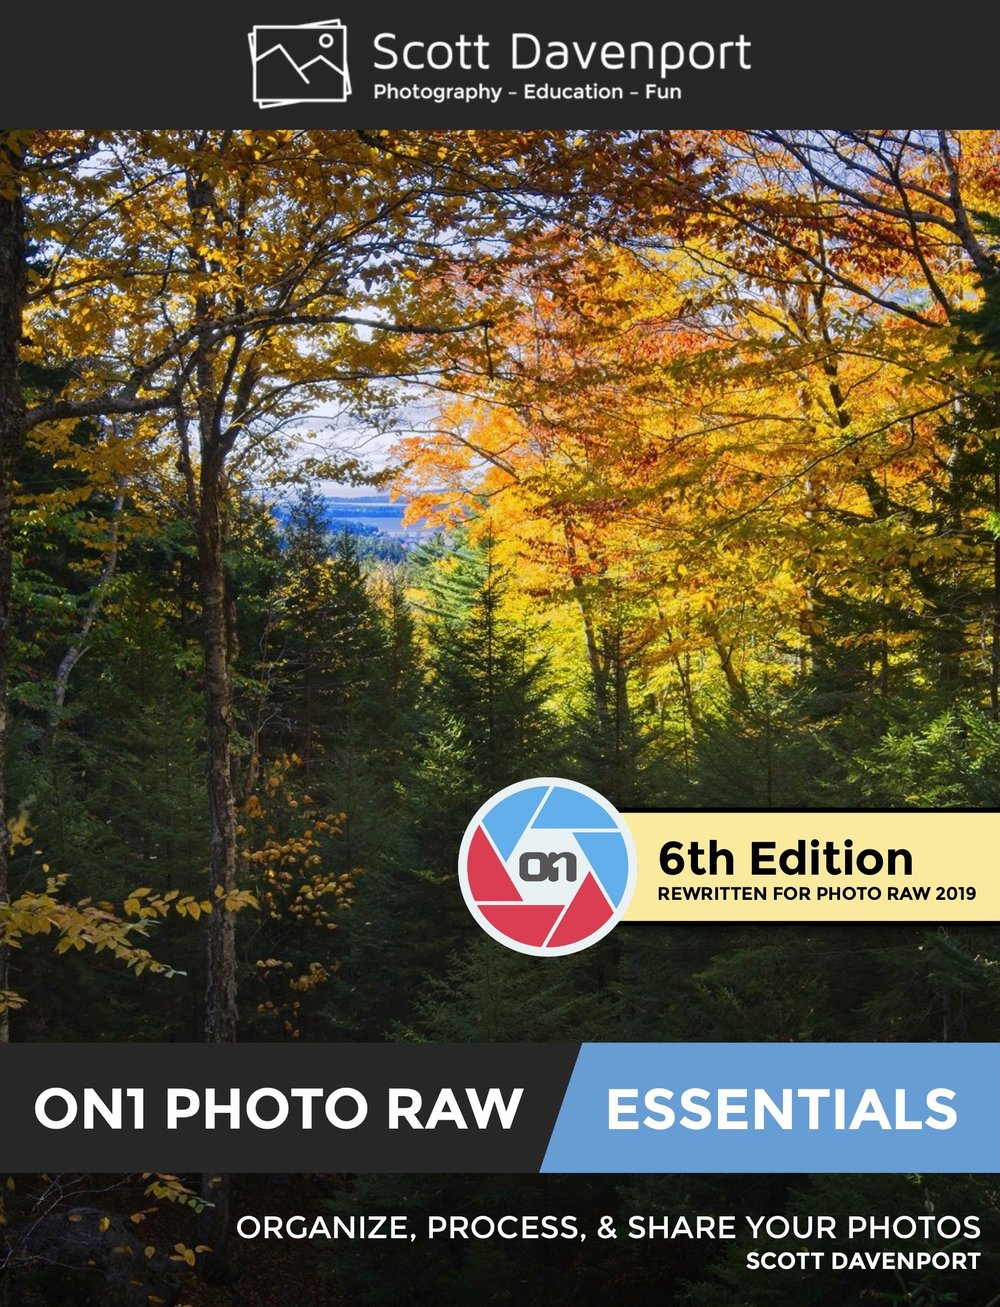 ON1 Photo RAW Essentials, 6th Edition, Coming Soon